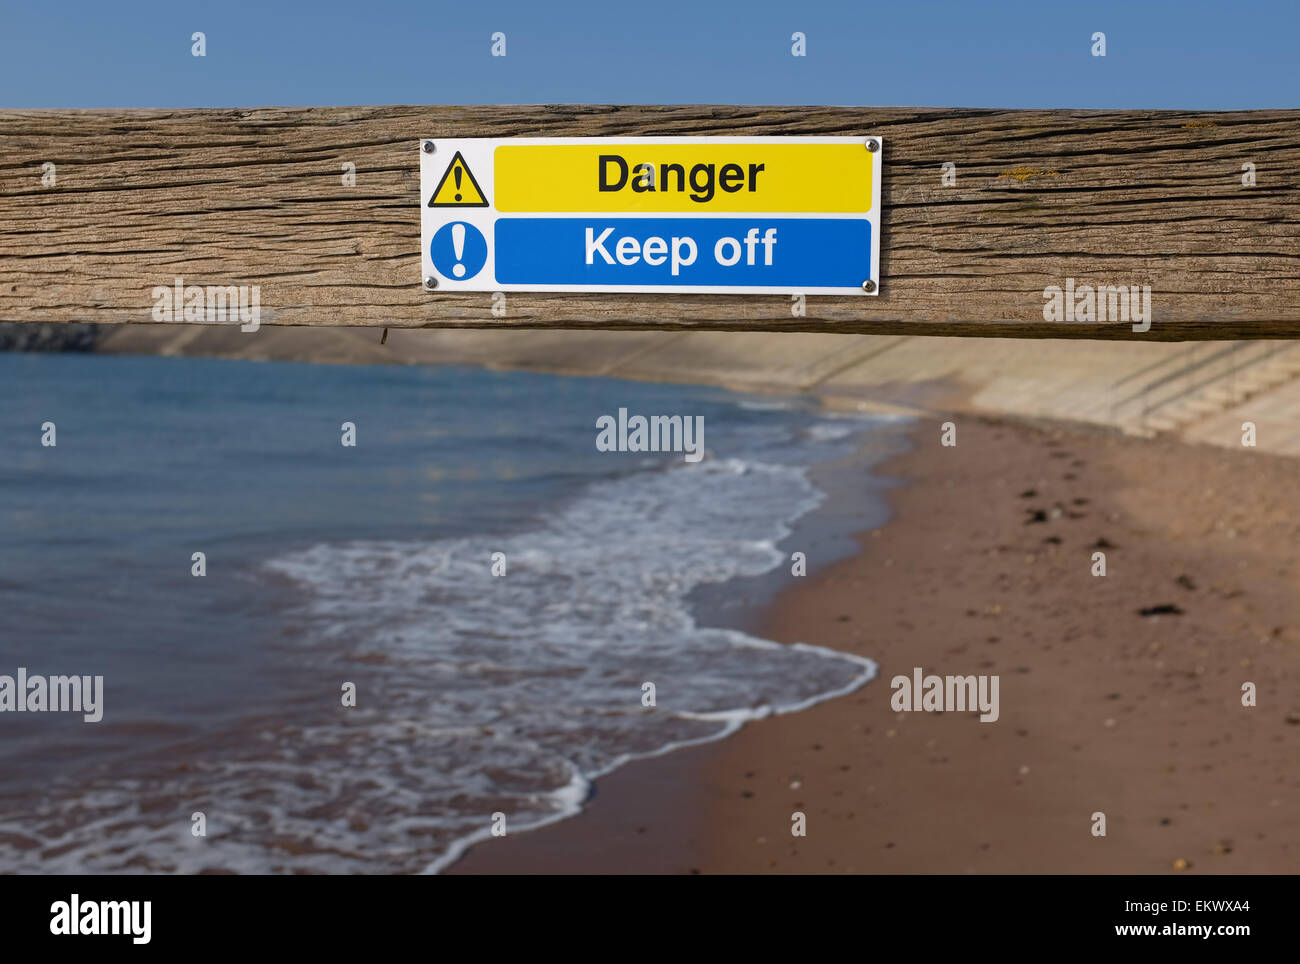 Danger keep off sign on a groyn at a beach in Dawlish Warren Devon England UK - Stock Image